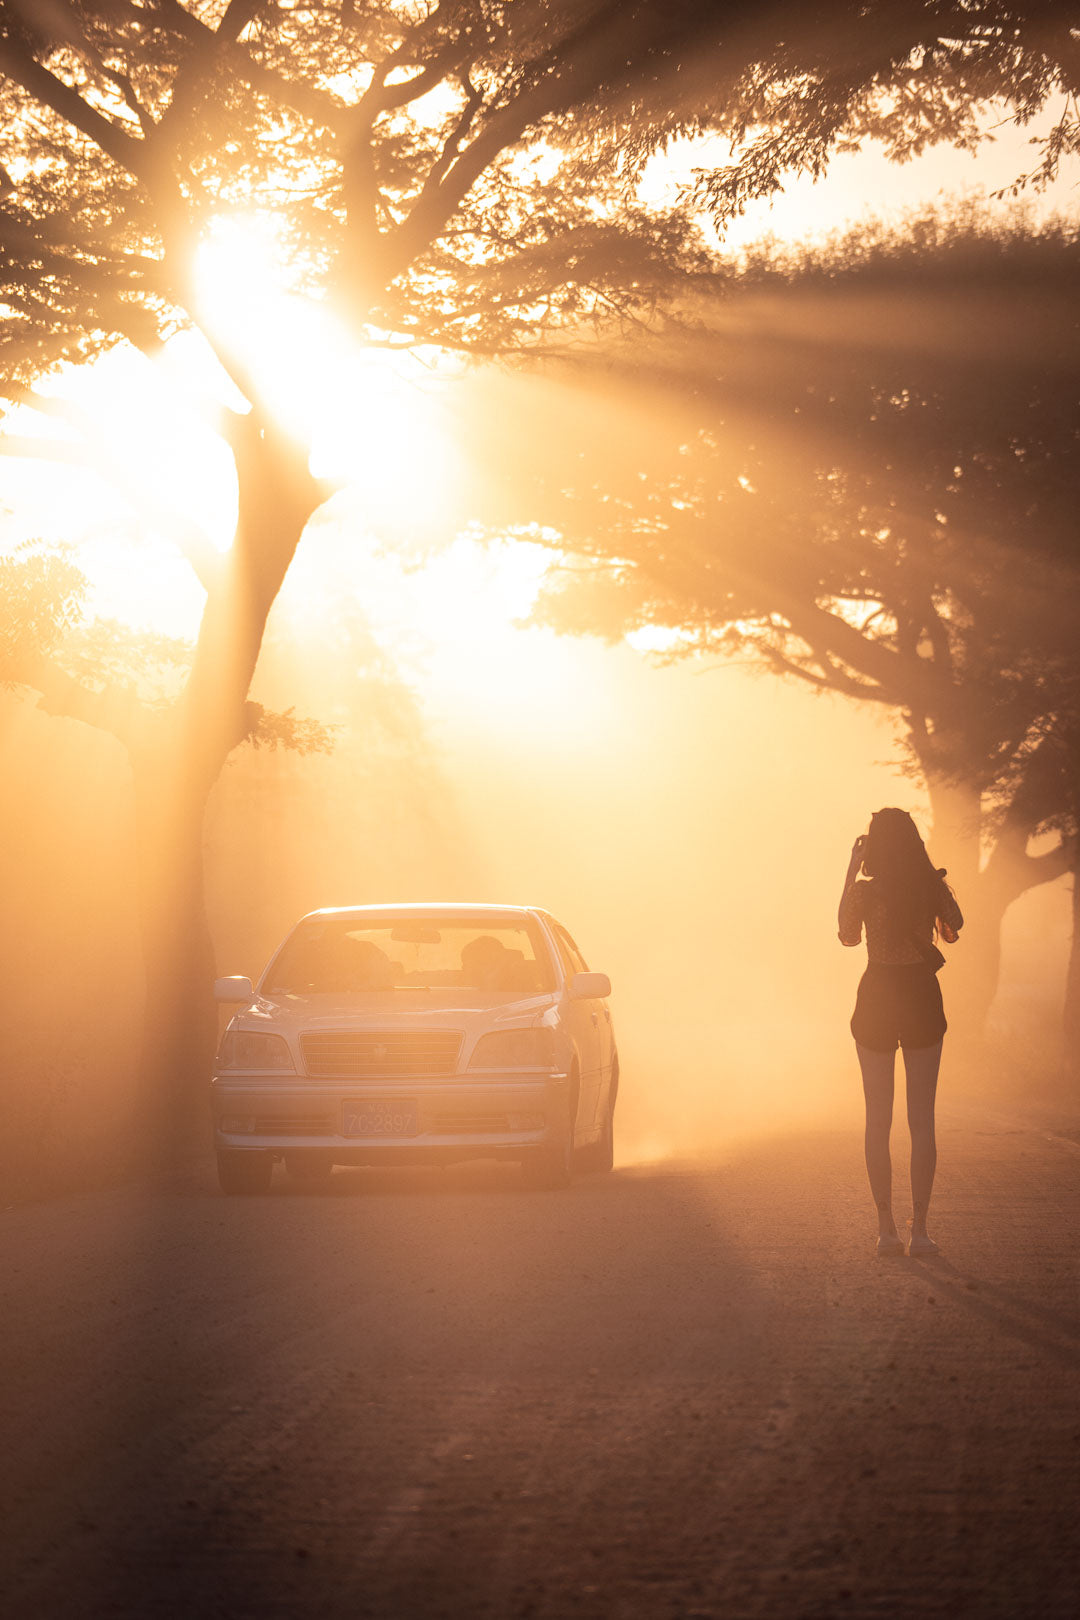 Photograph of a hitchhiker illuminated by a ray of sunshine